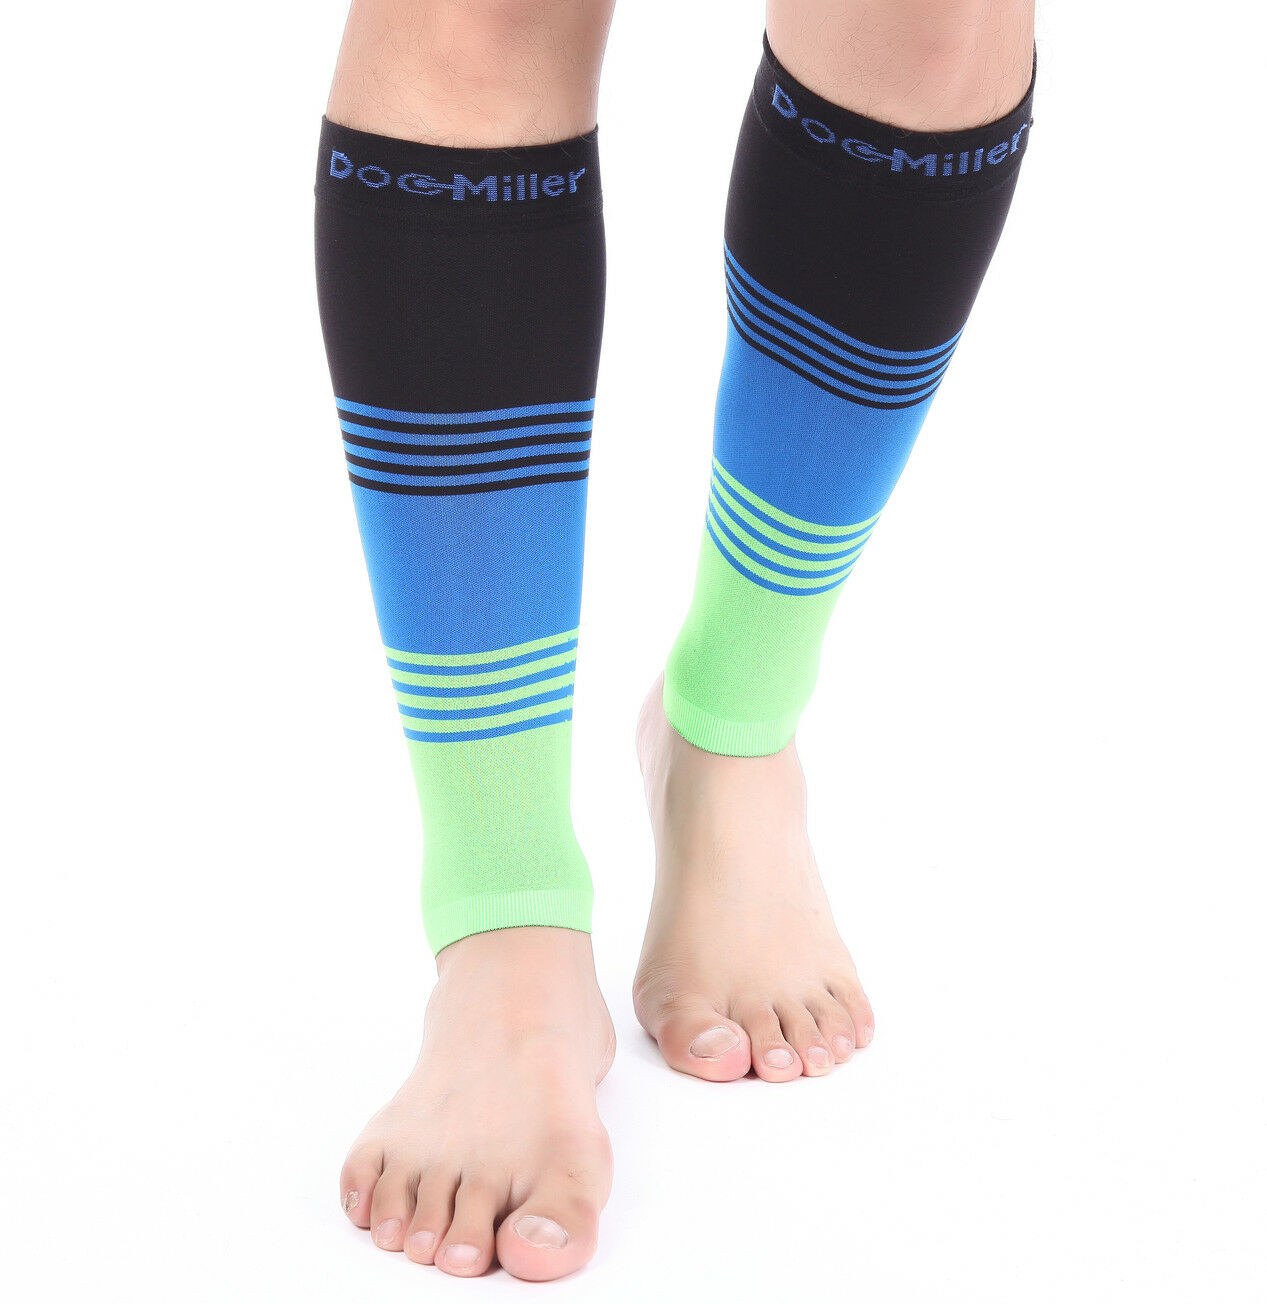 091dc38277 Doc Miller Calf Compression Sleeve 1 Pair 20-30 mmHg Varicose Veins  BLACK/BLUE/GREEN